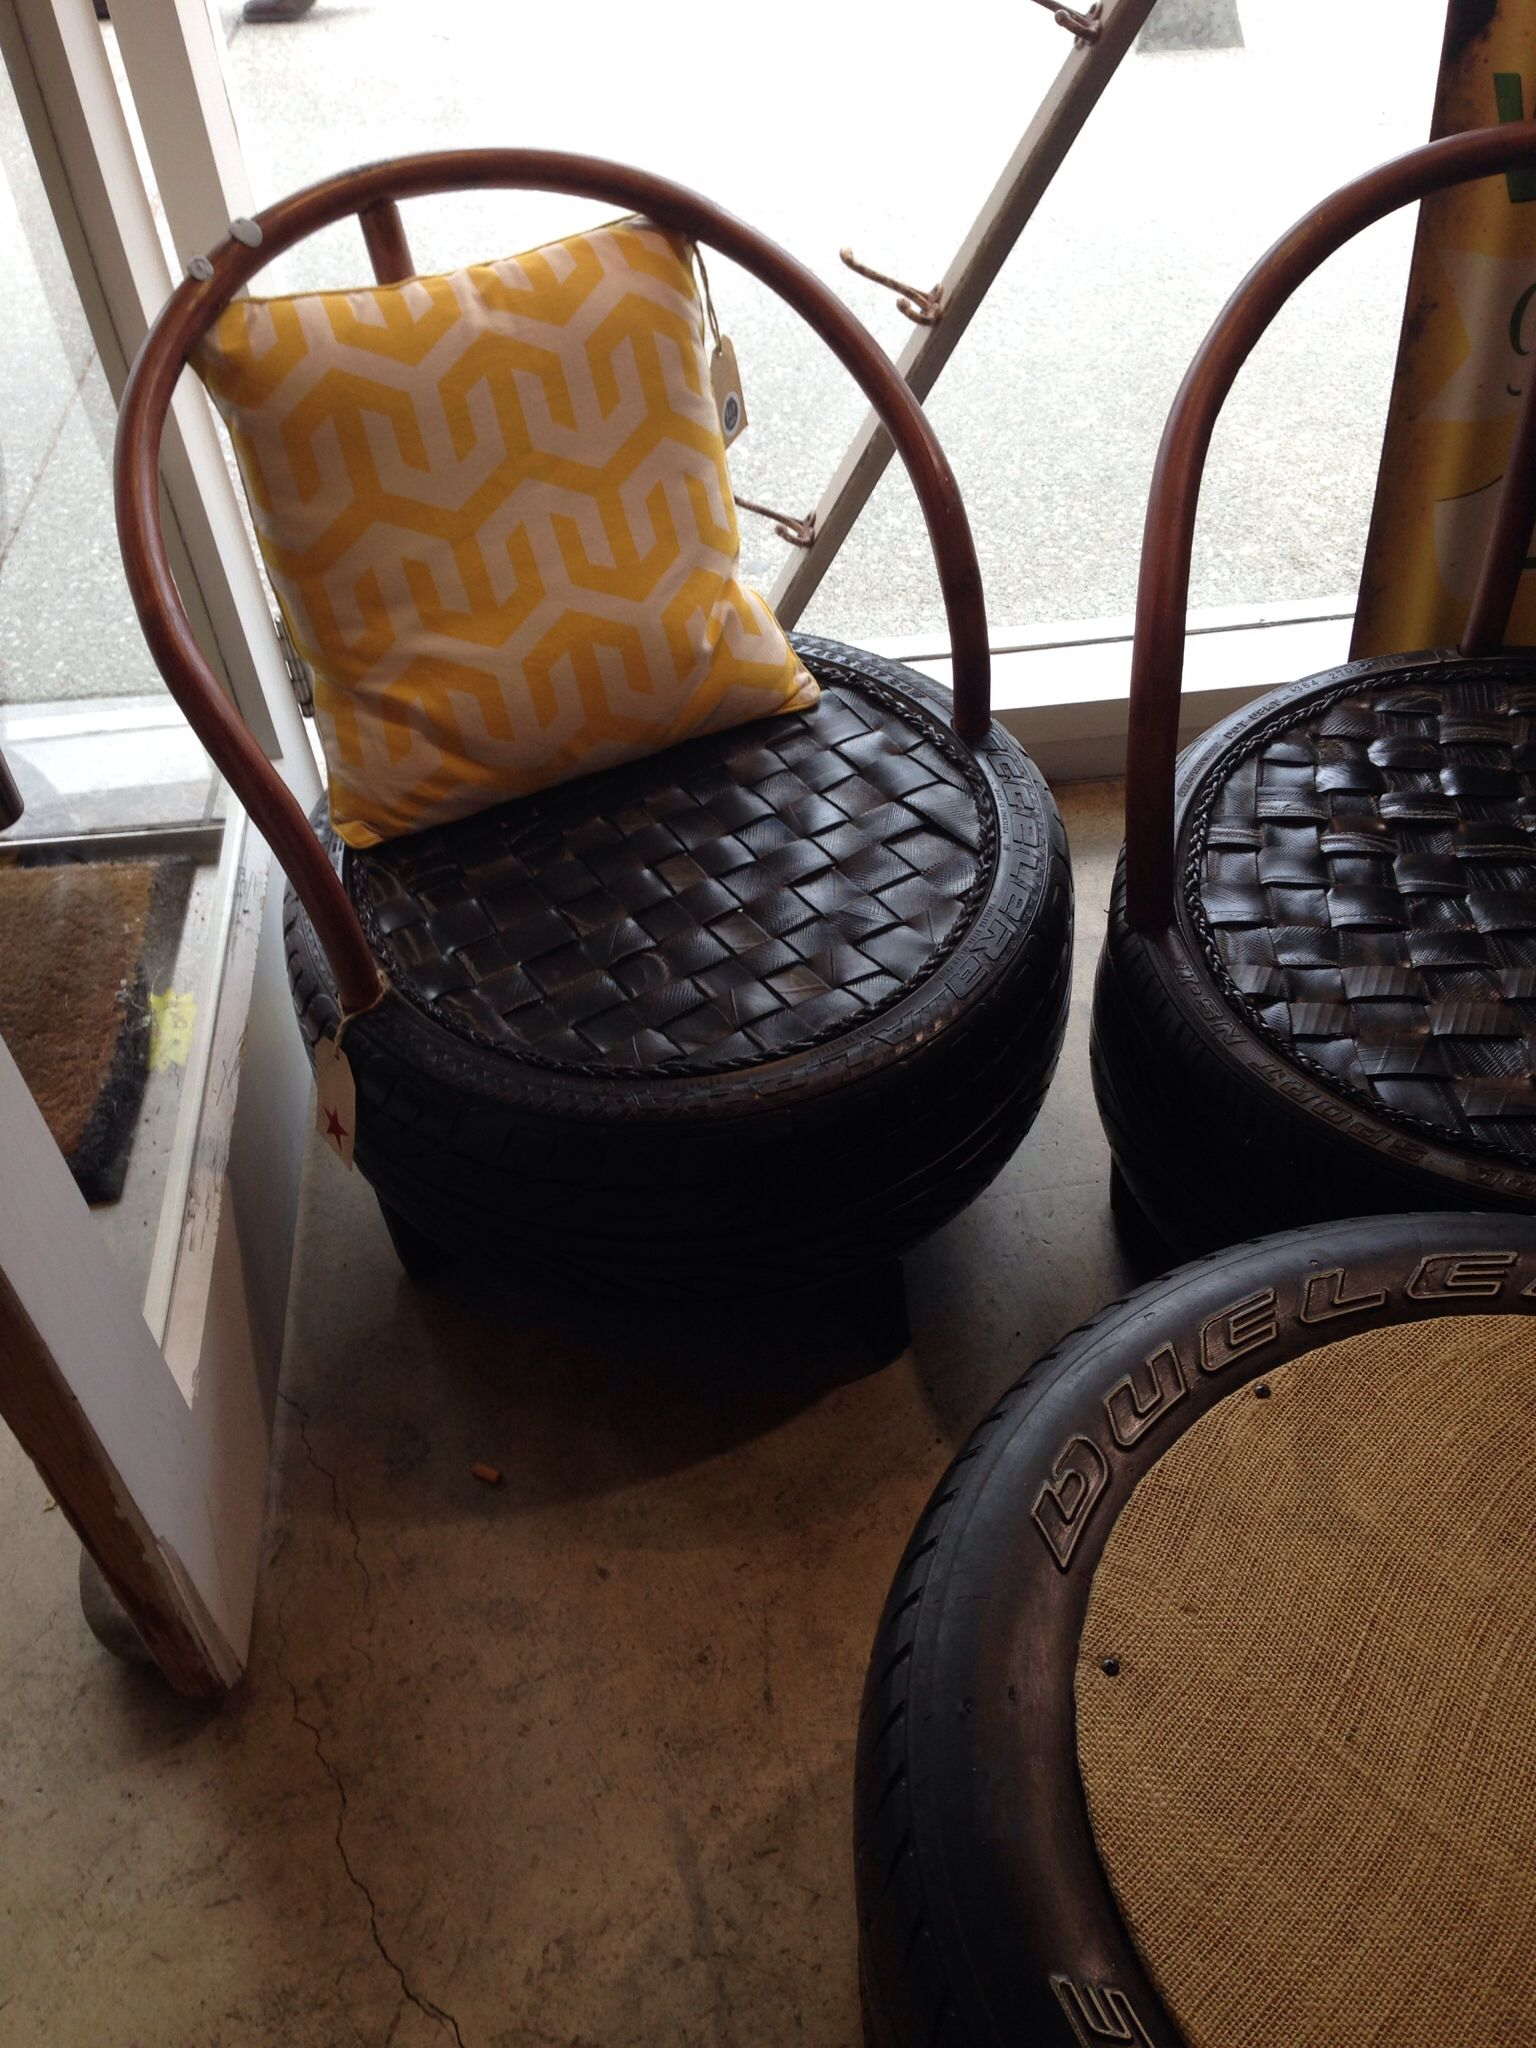 Tyre Chair And Table Tire Chair Tire Chairs Recycled Furniture